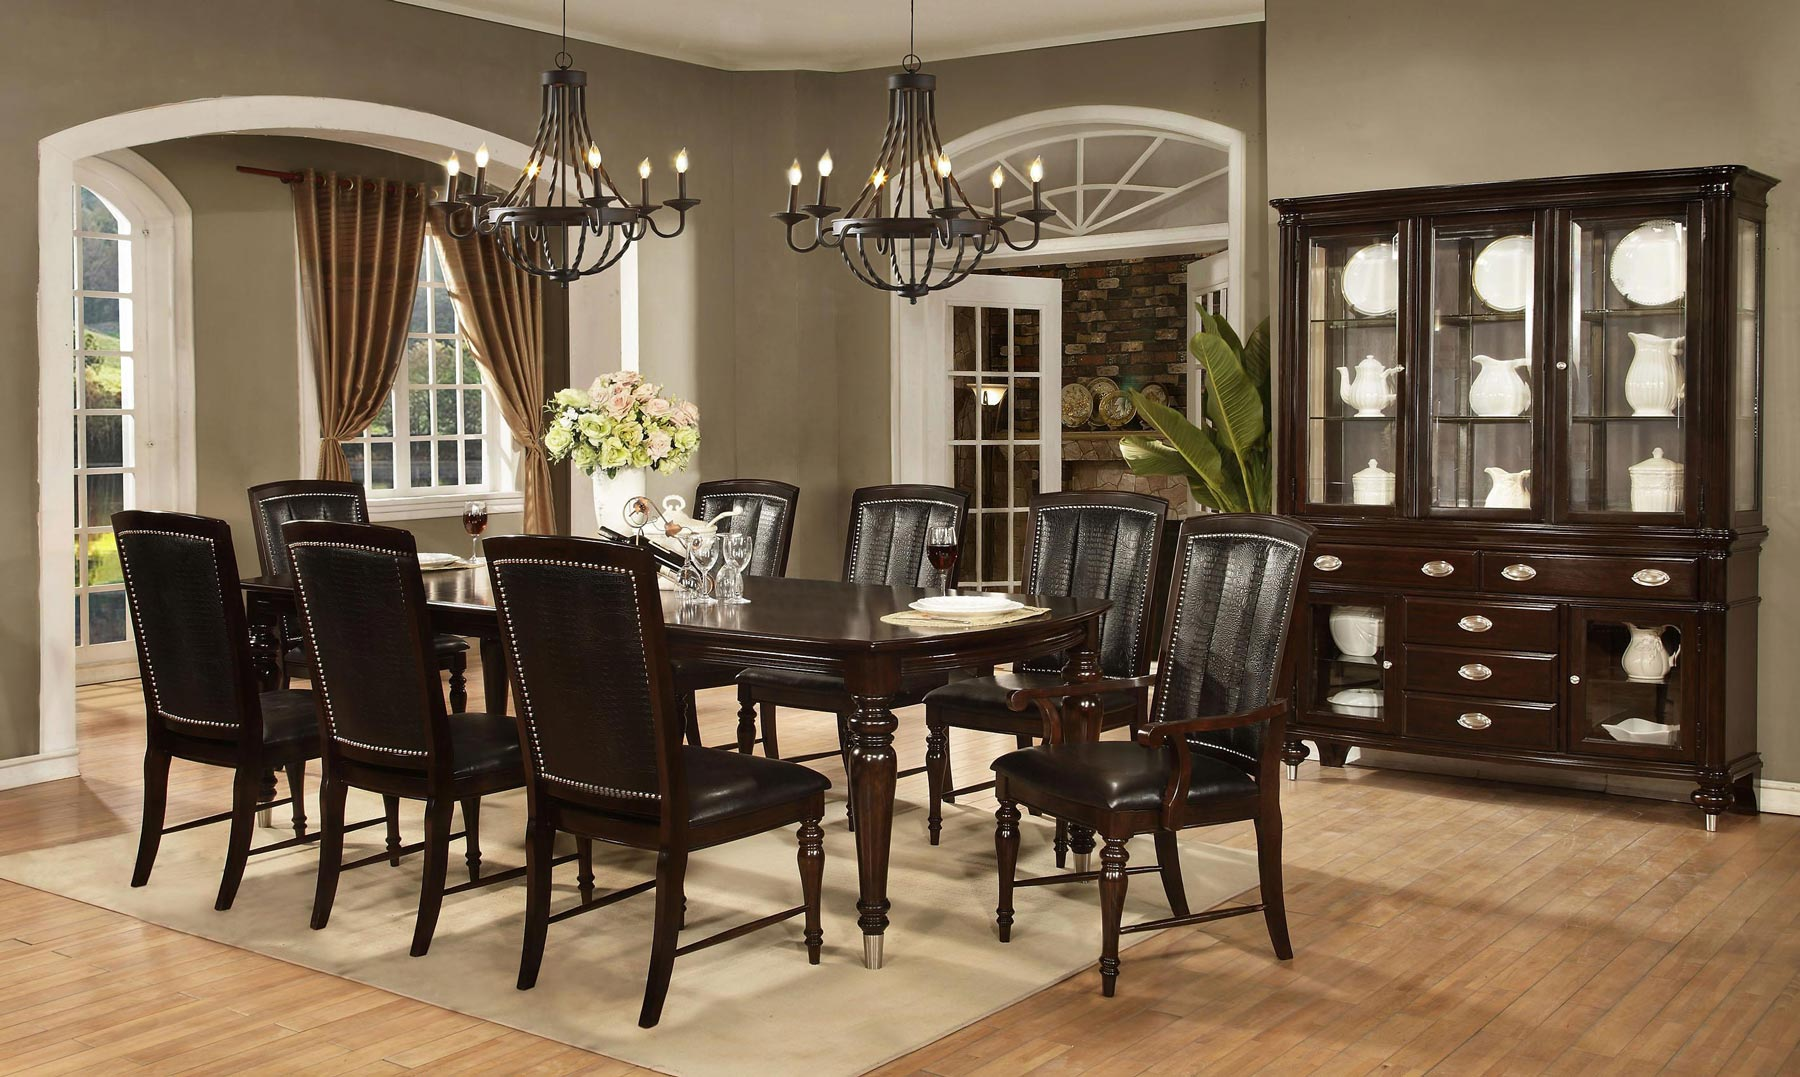 pics of dining room furniture | Dundee Place 7 Piece Dining Room Set | Gonzalez Furniture